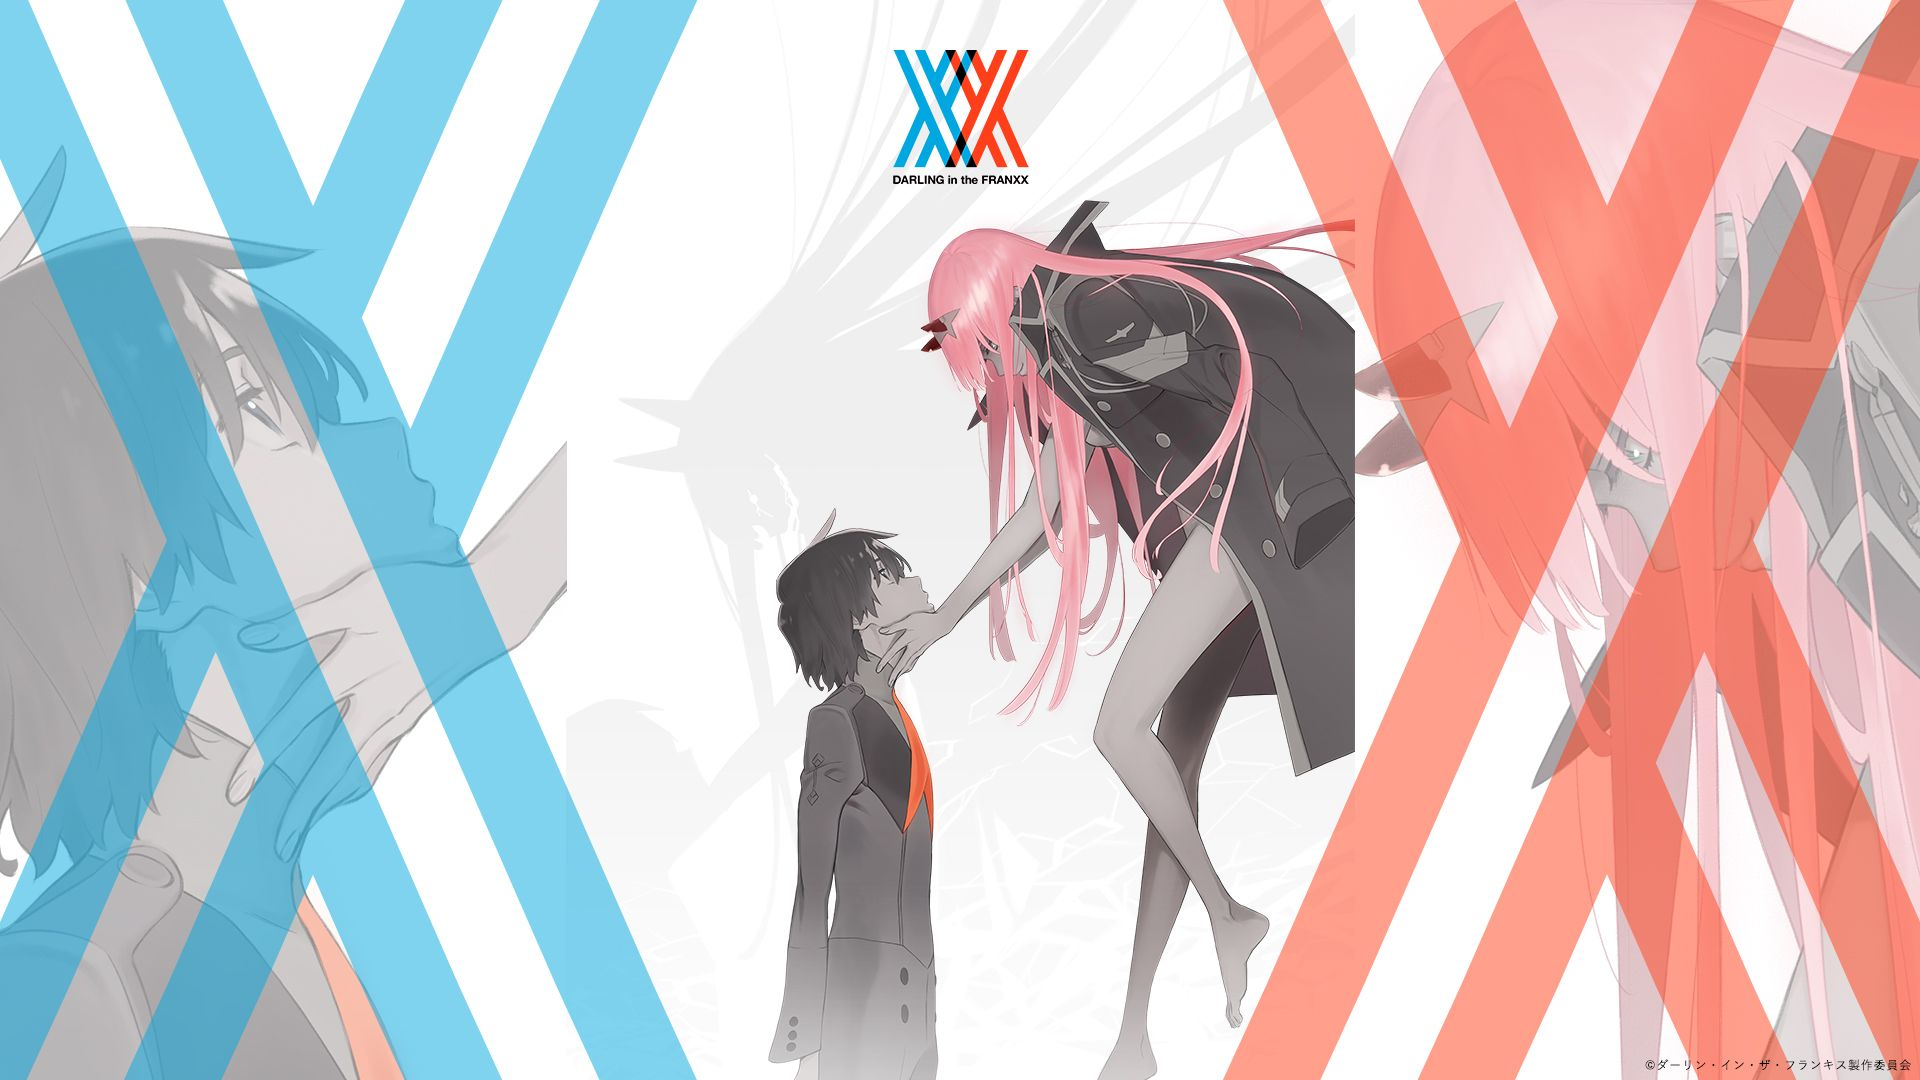 Darling In The Franxx Wallpapers Top Free Darling In The Franxx